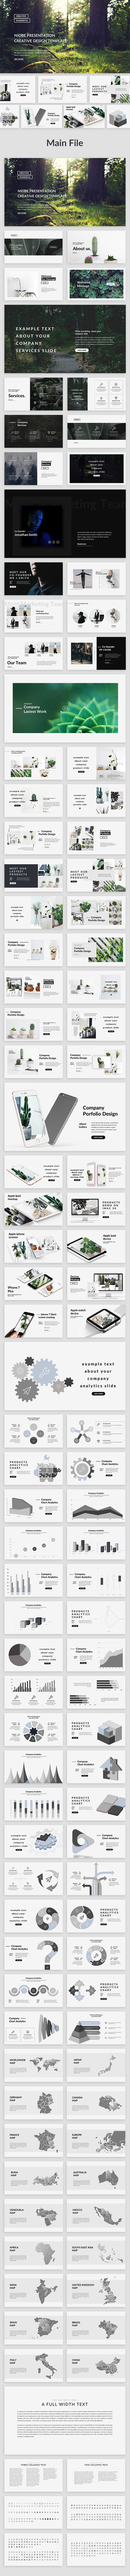 Niobe - Creative Google Slide Template - Google Slides Presentation Templates